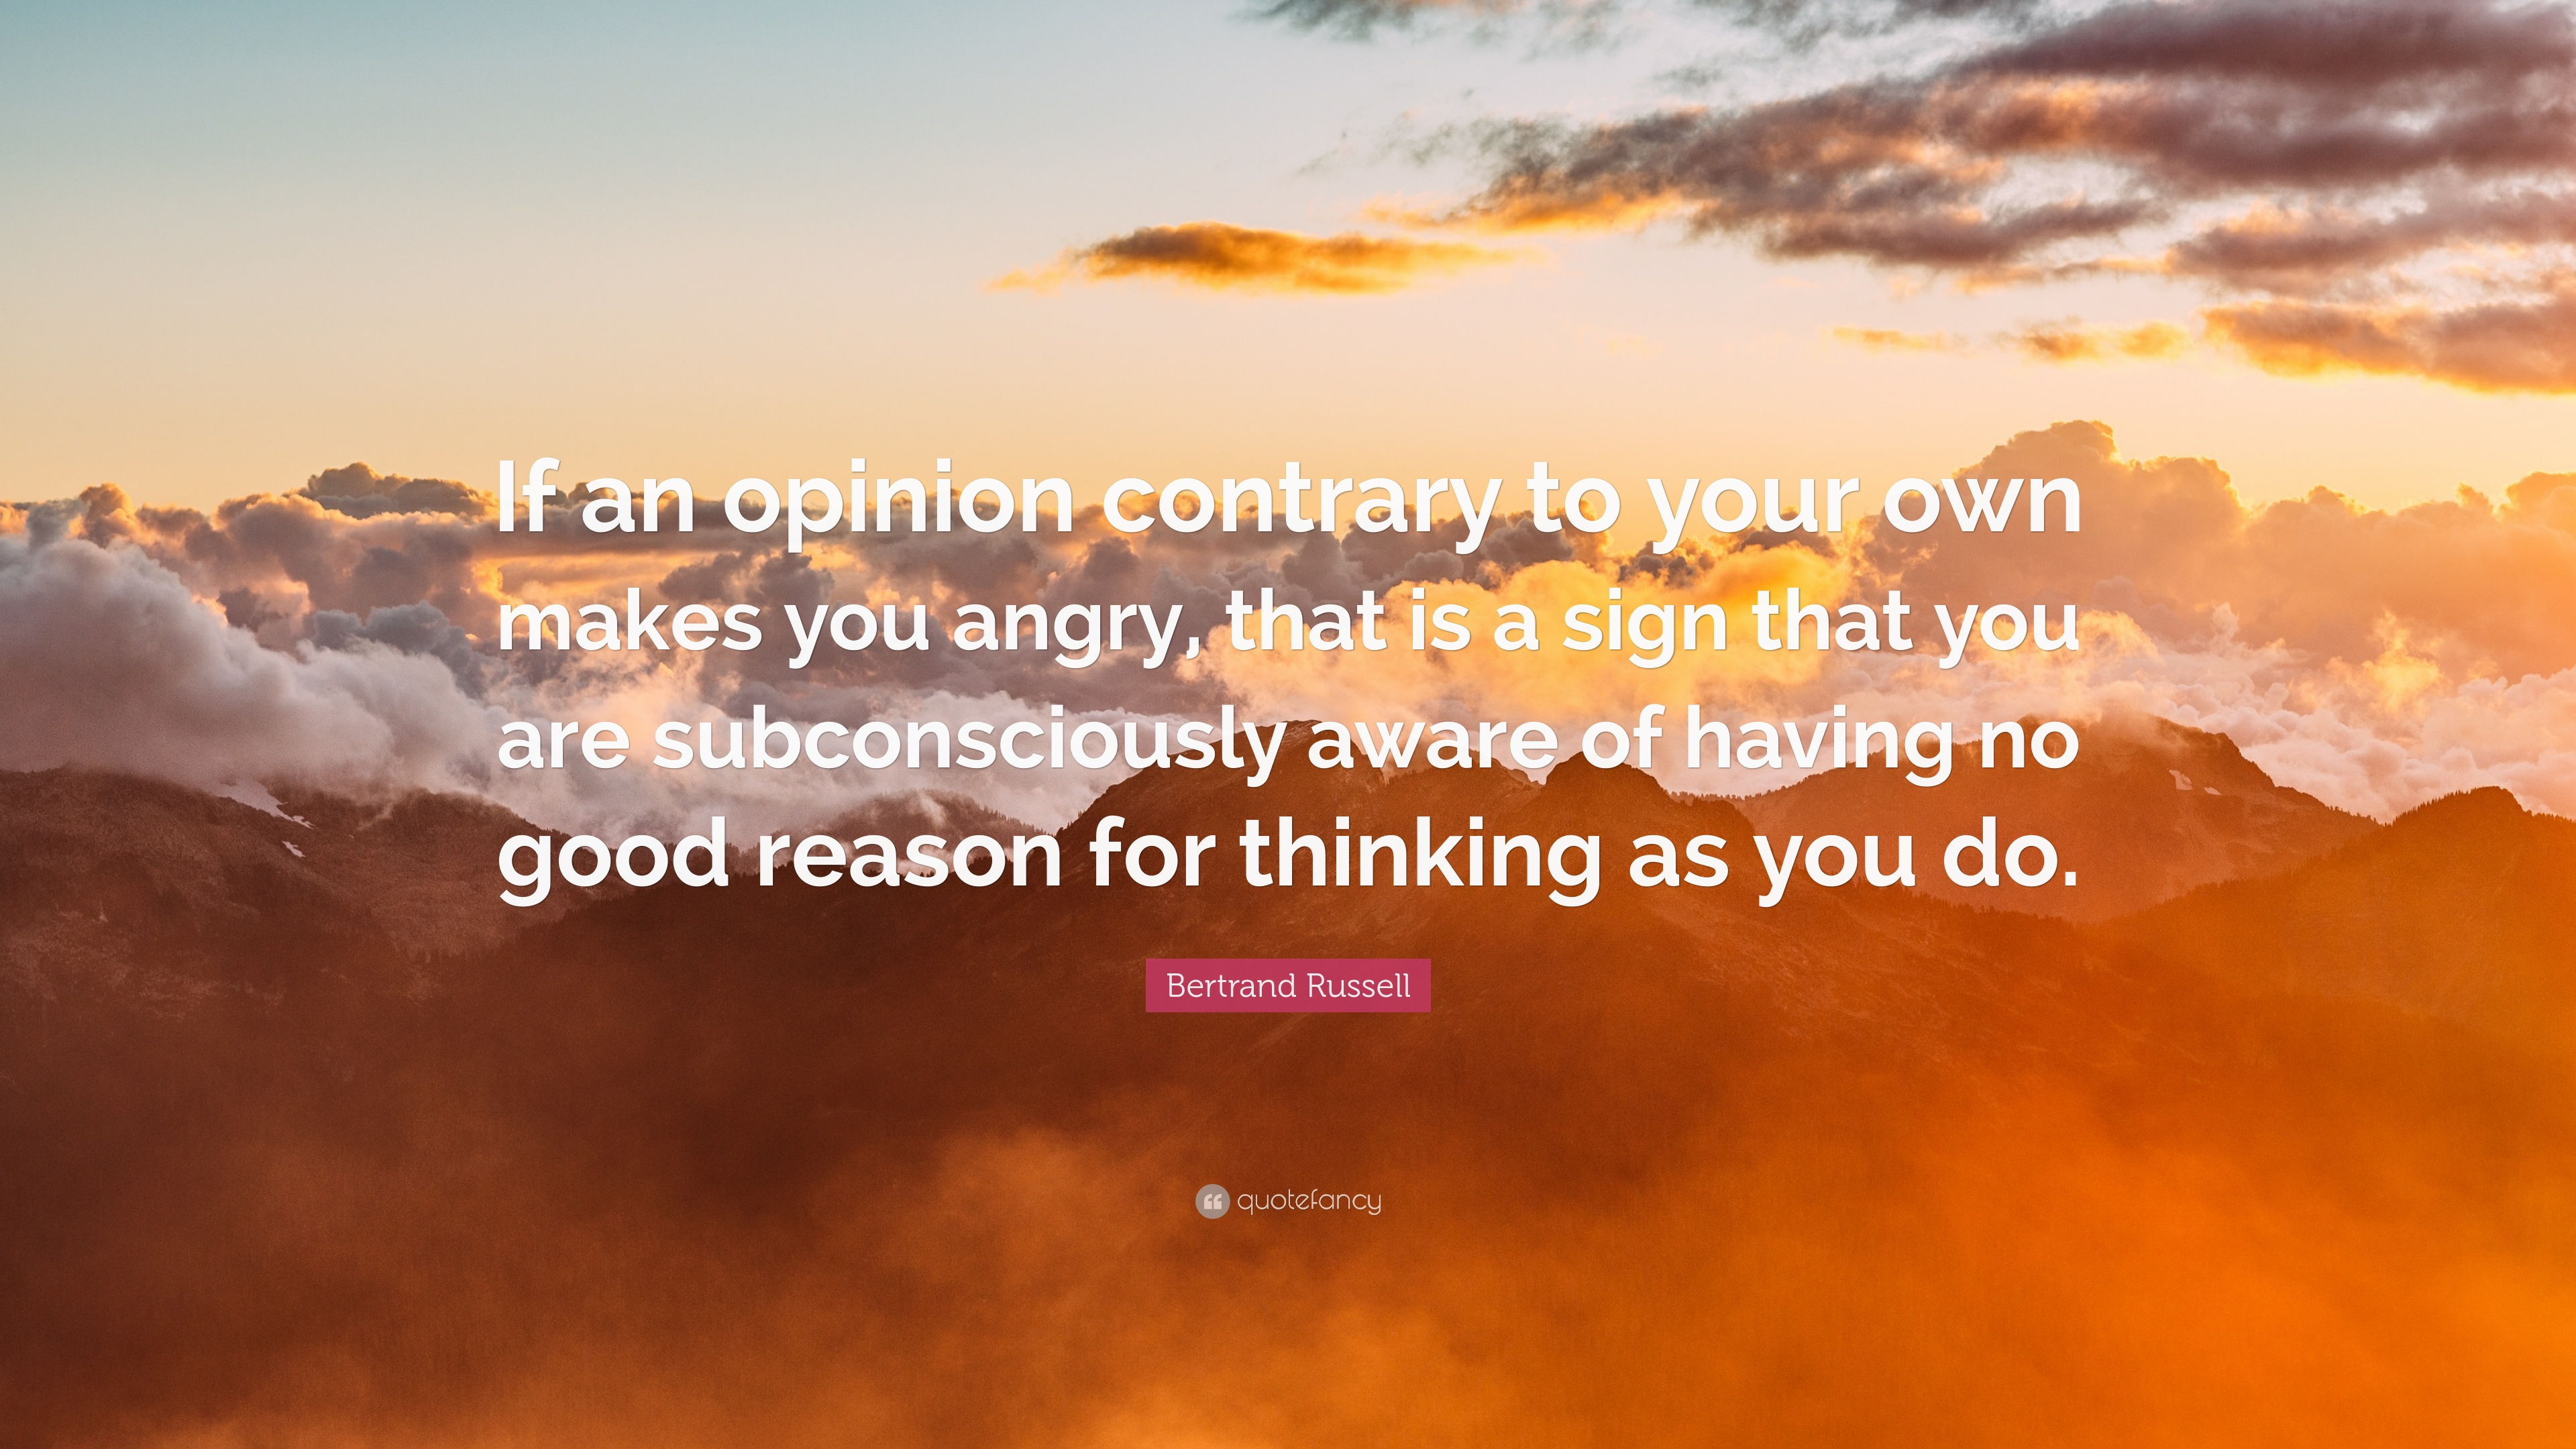 bertrand russell quote if an opinion contrary to your own makes bertrand russell quote if an opinion contrary to your own makes you angry